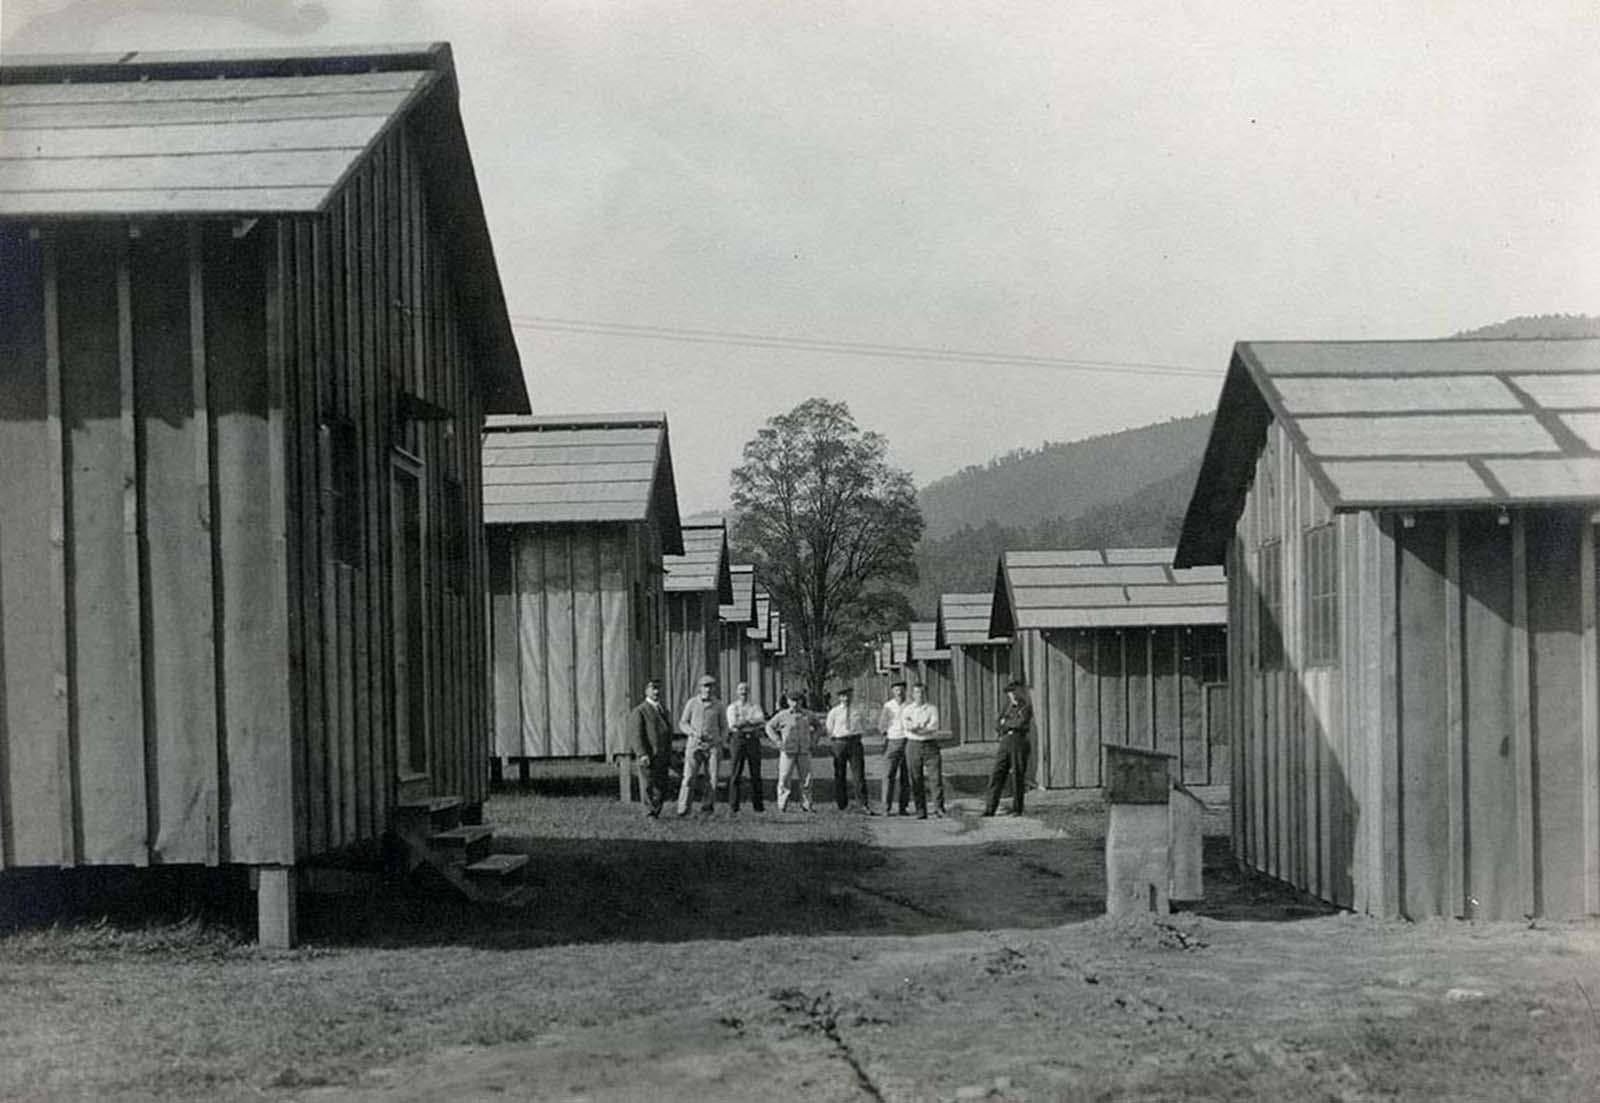 Internees pose among the barracks they helped to construct.